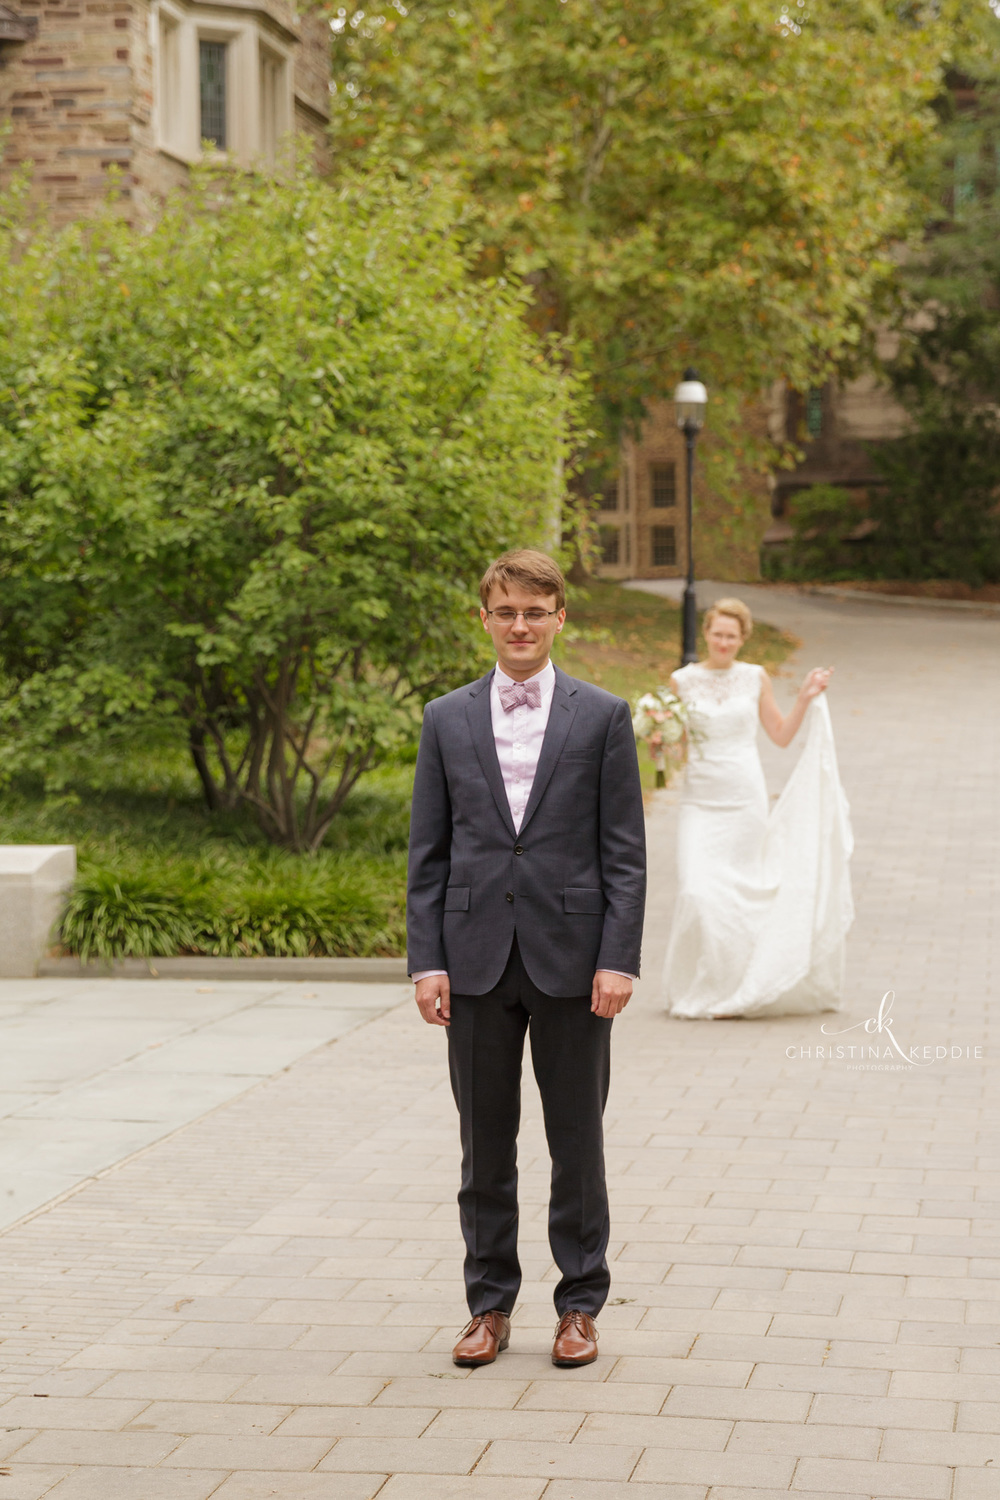 Bride and groom first look before ceremony | Christina Keddie Photography | Princeton NJ wedding photographer